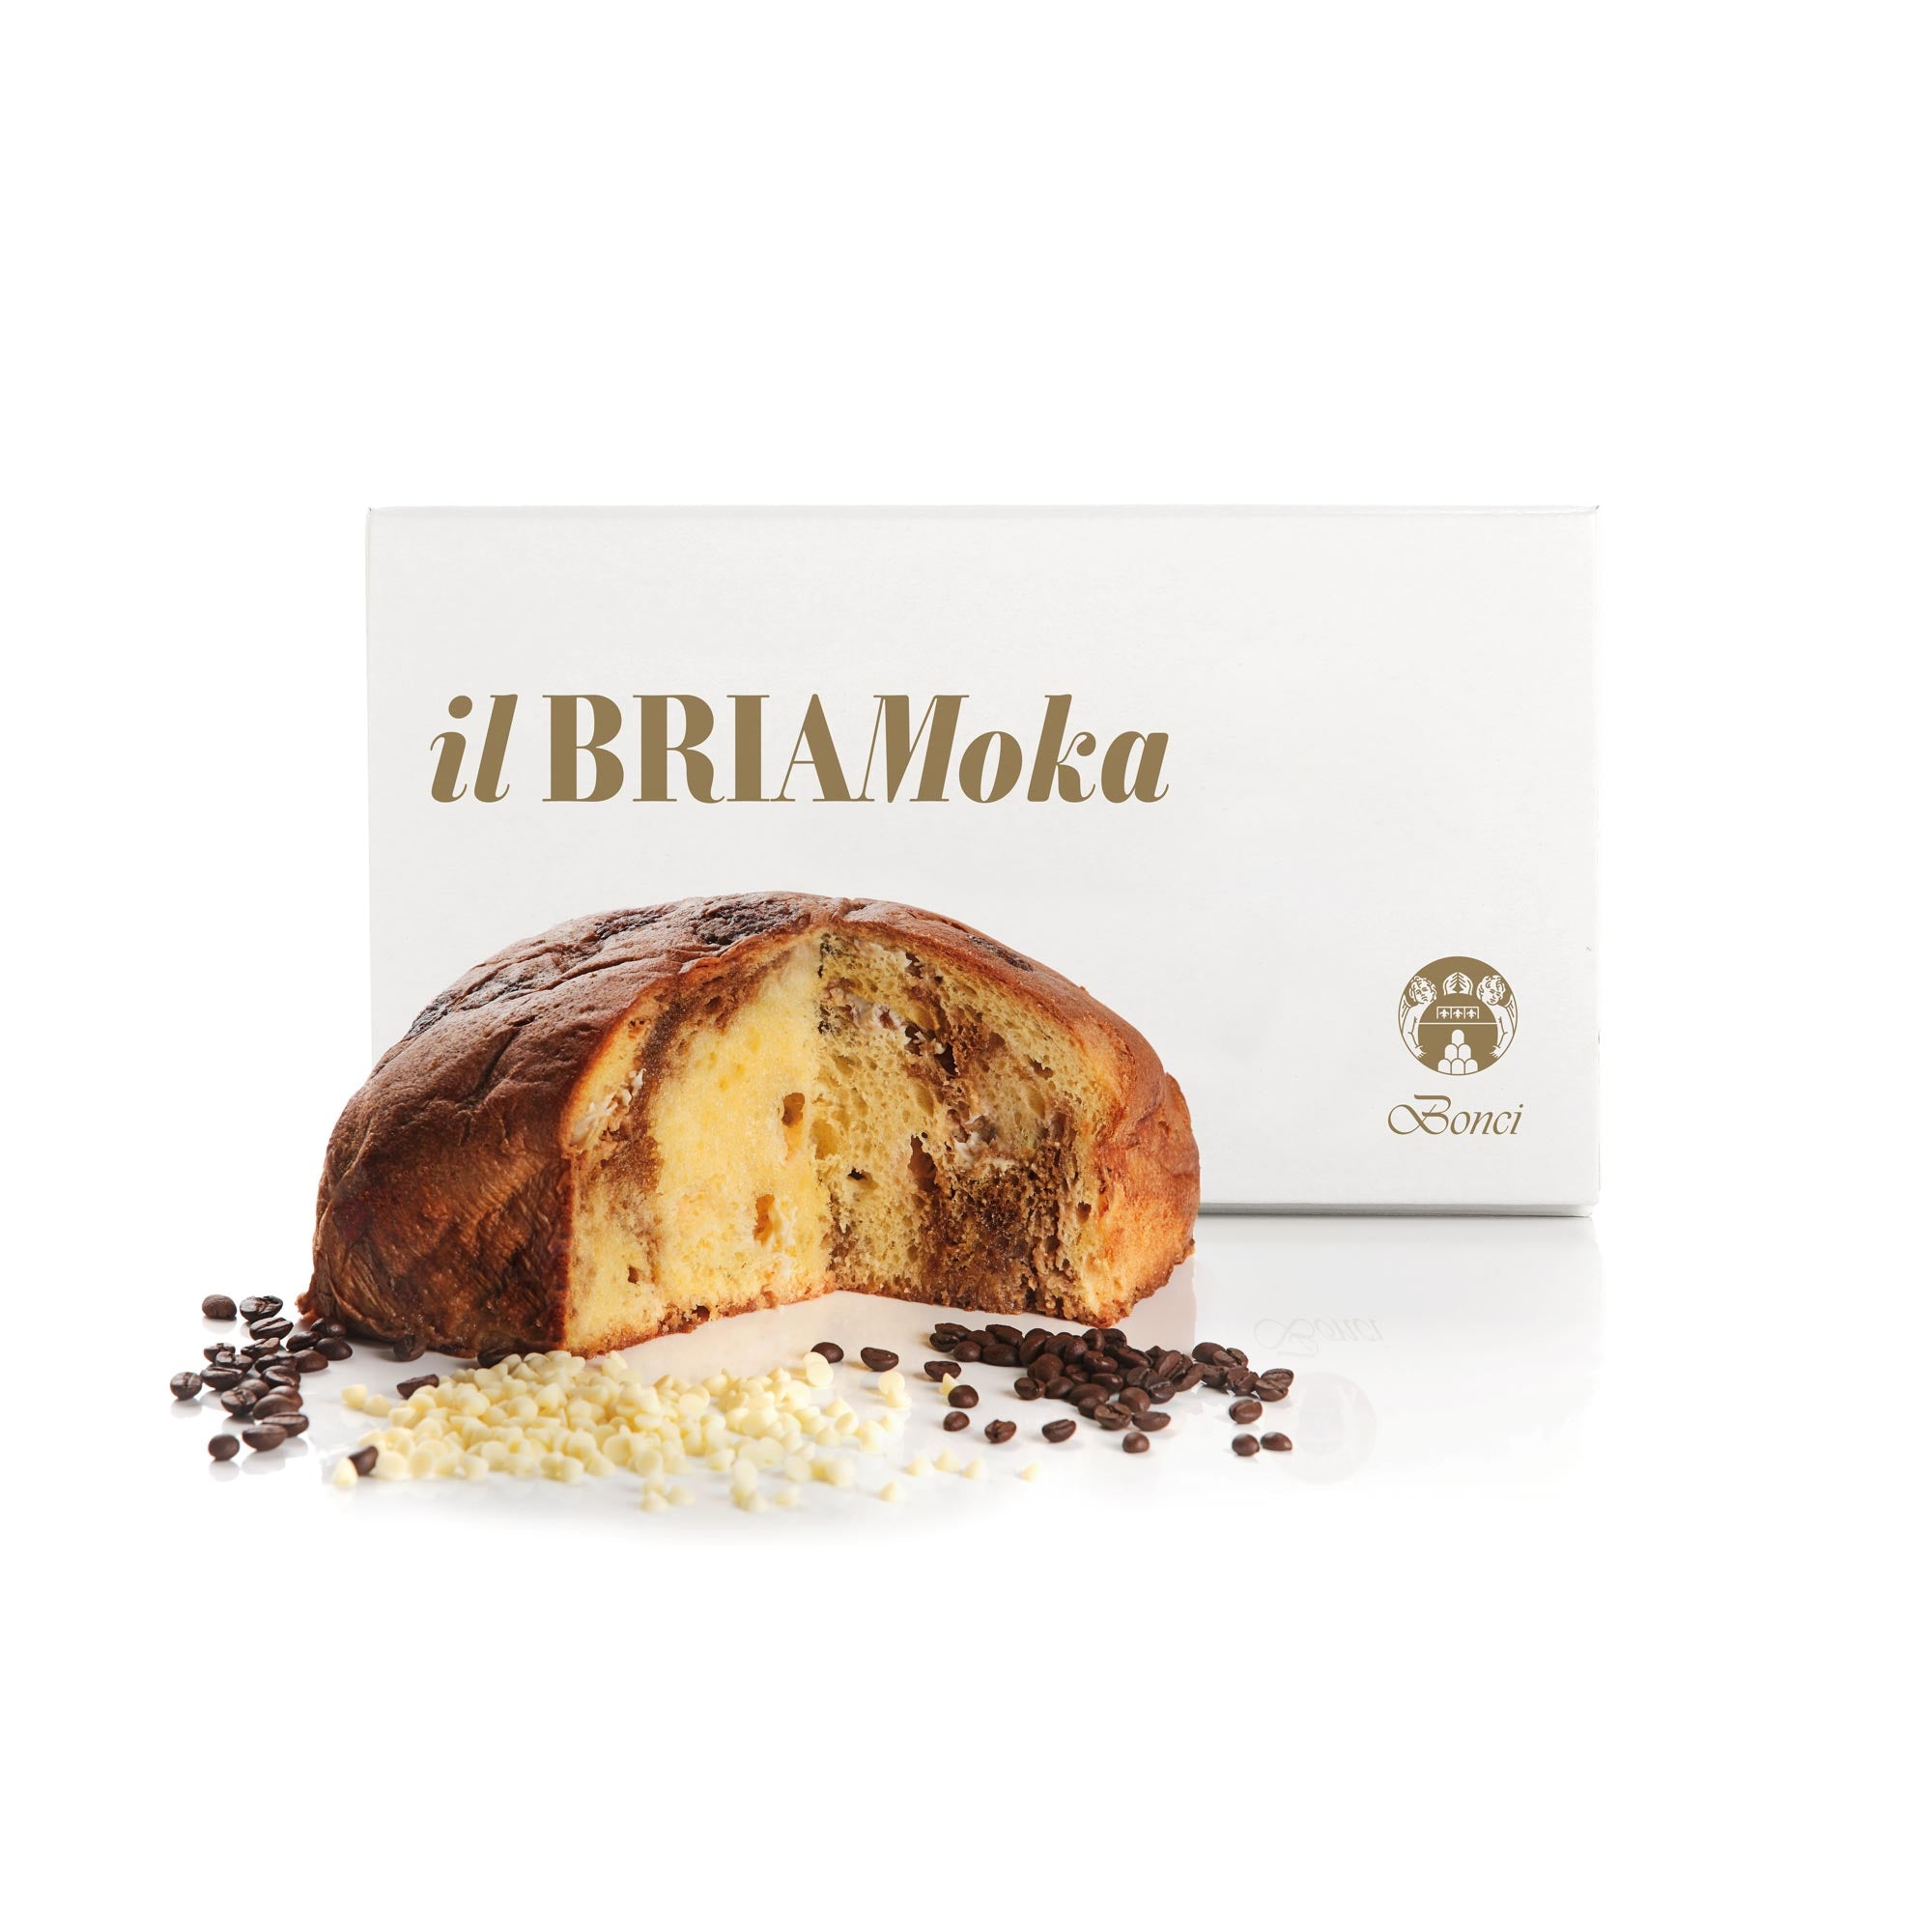 The BRIA Moka 800g